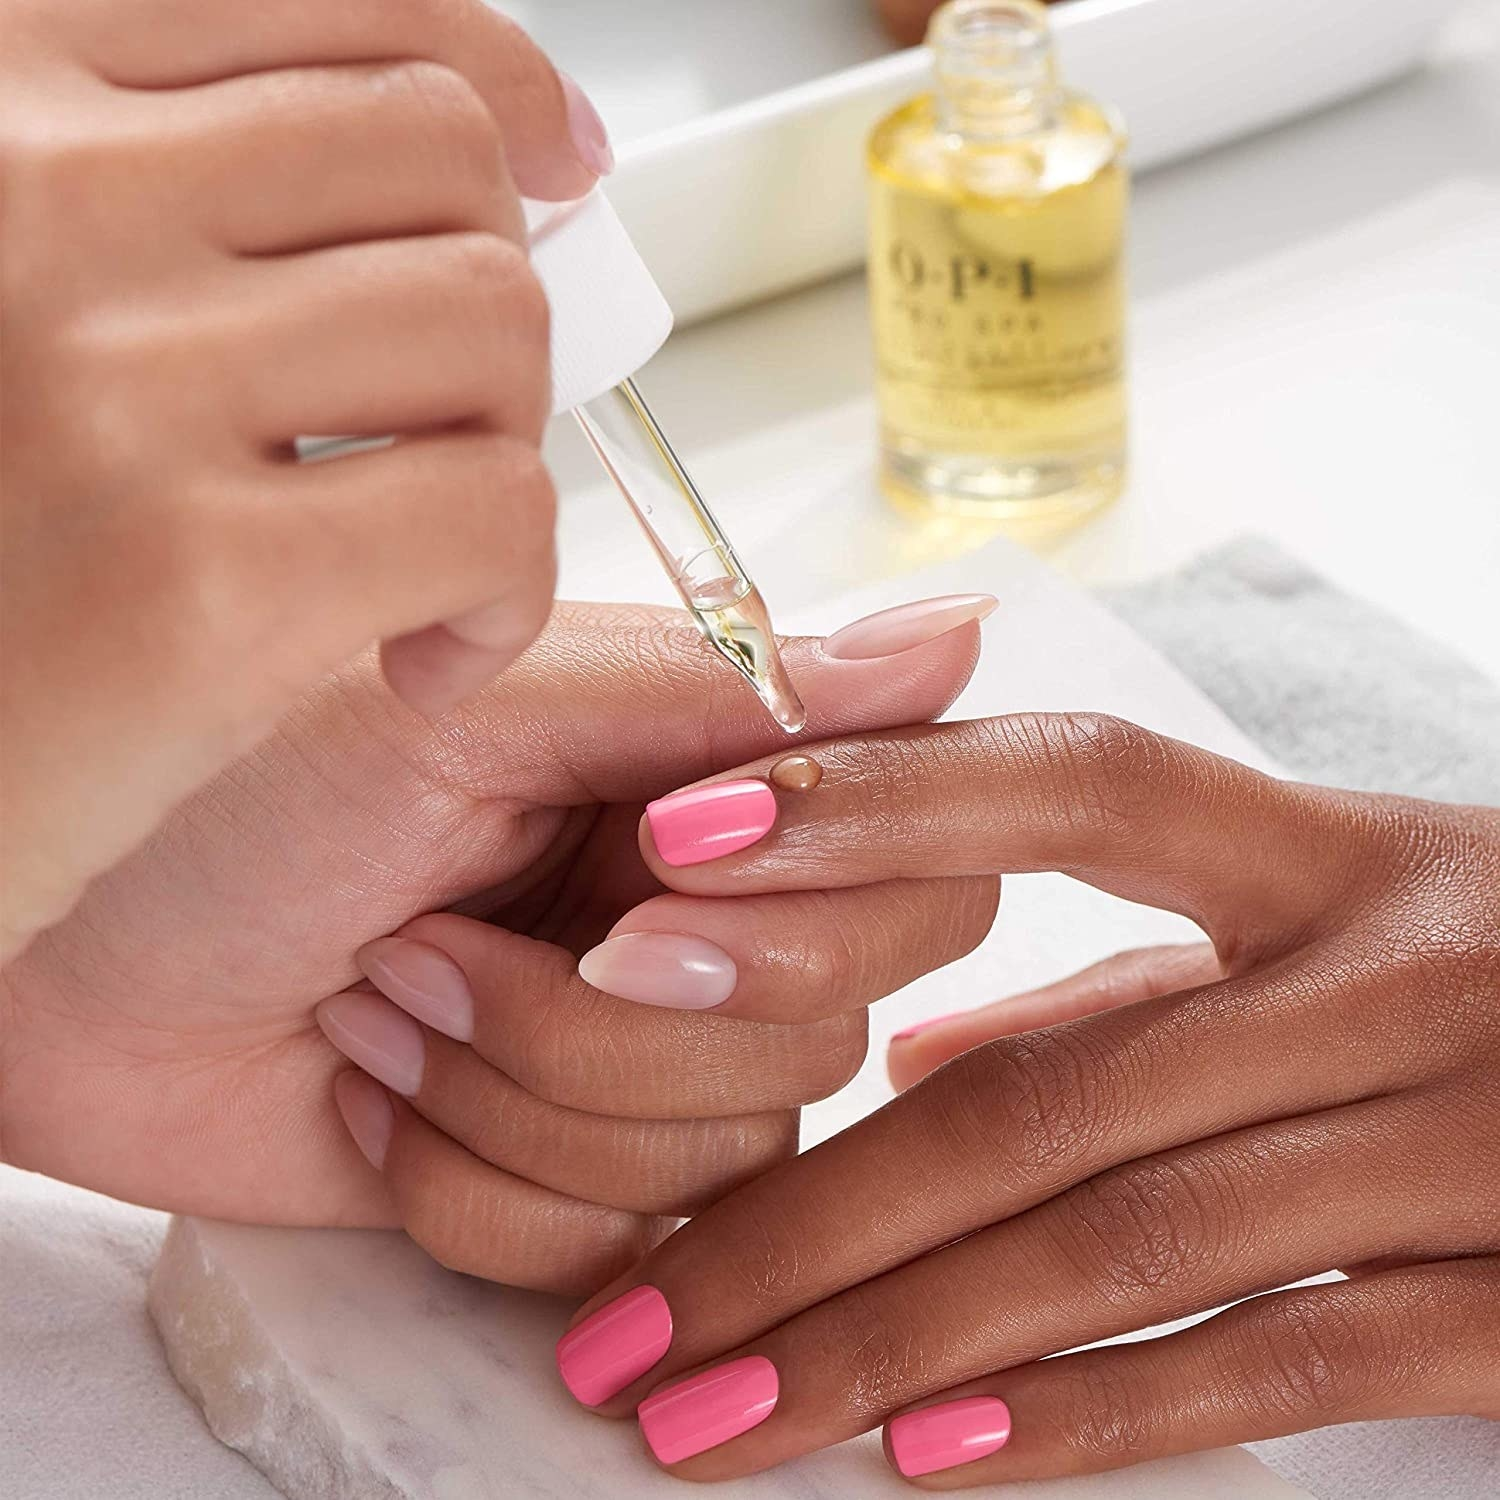 a person applying a drop of nourishing oil to someones cuticle